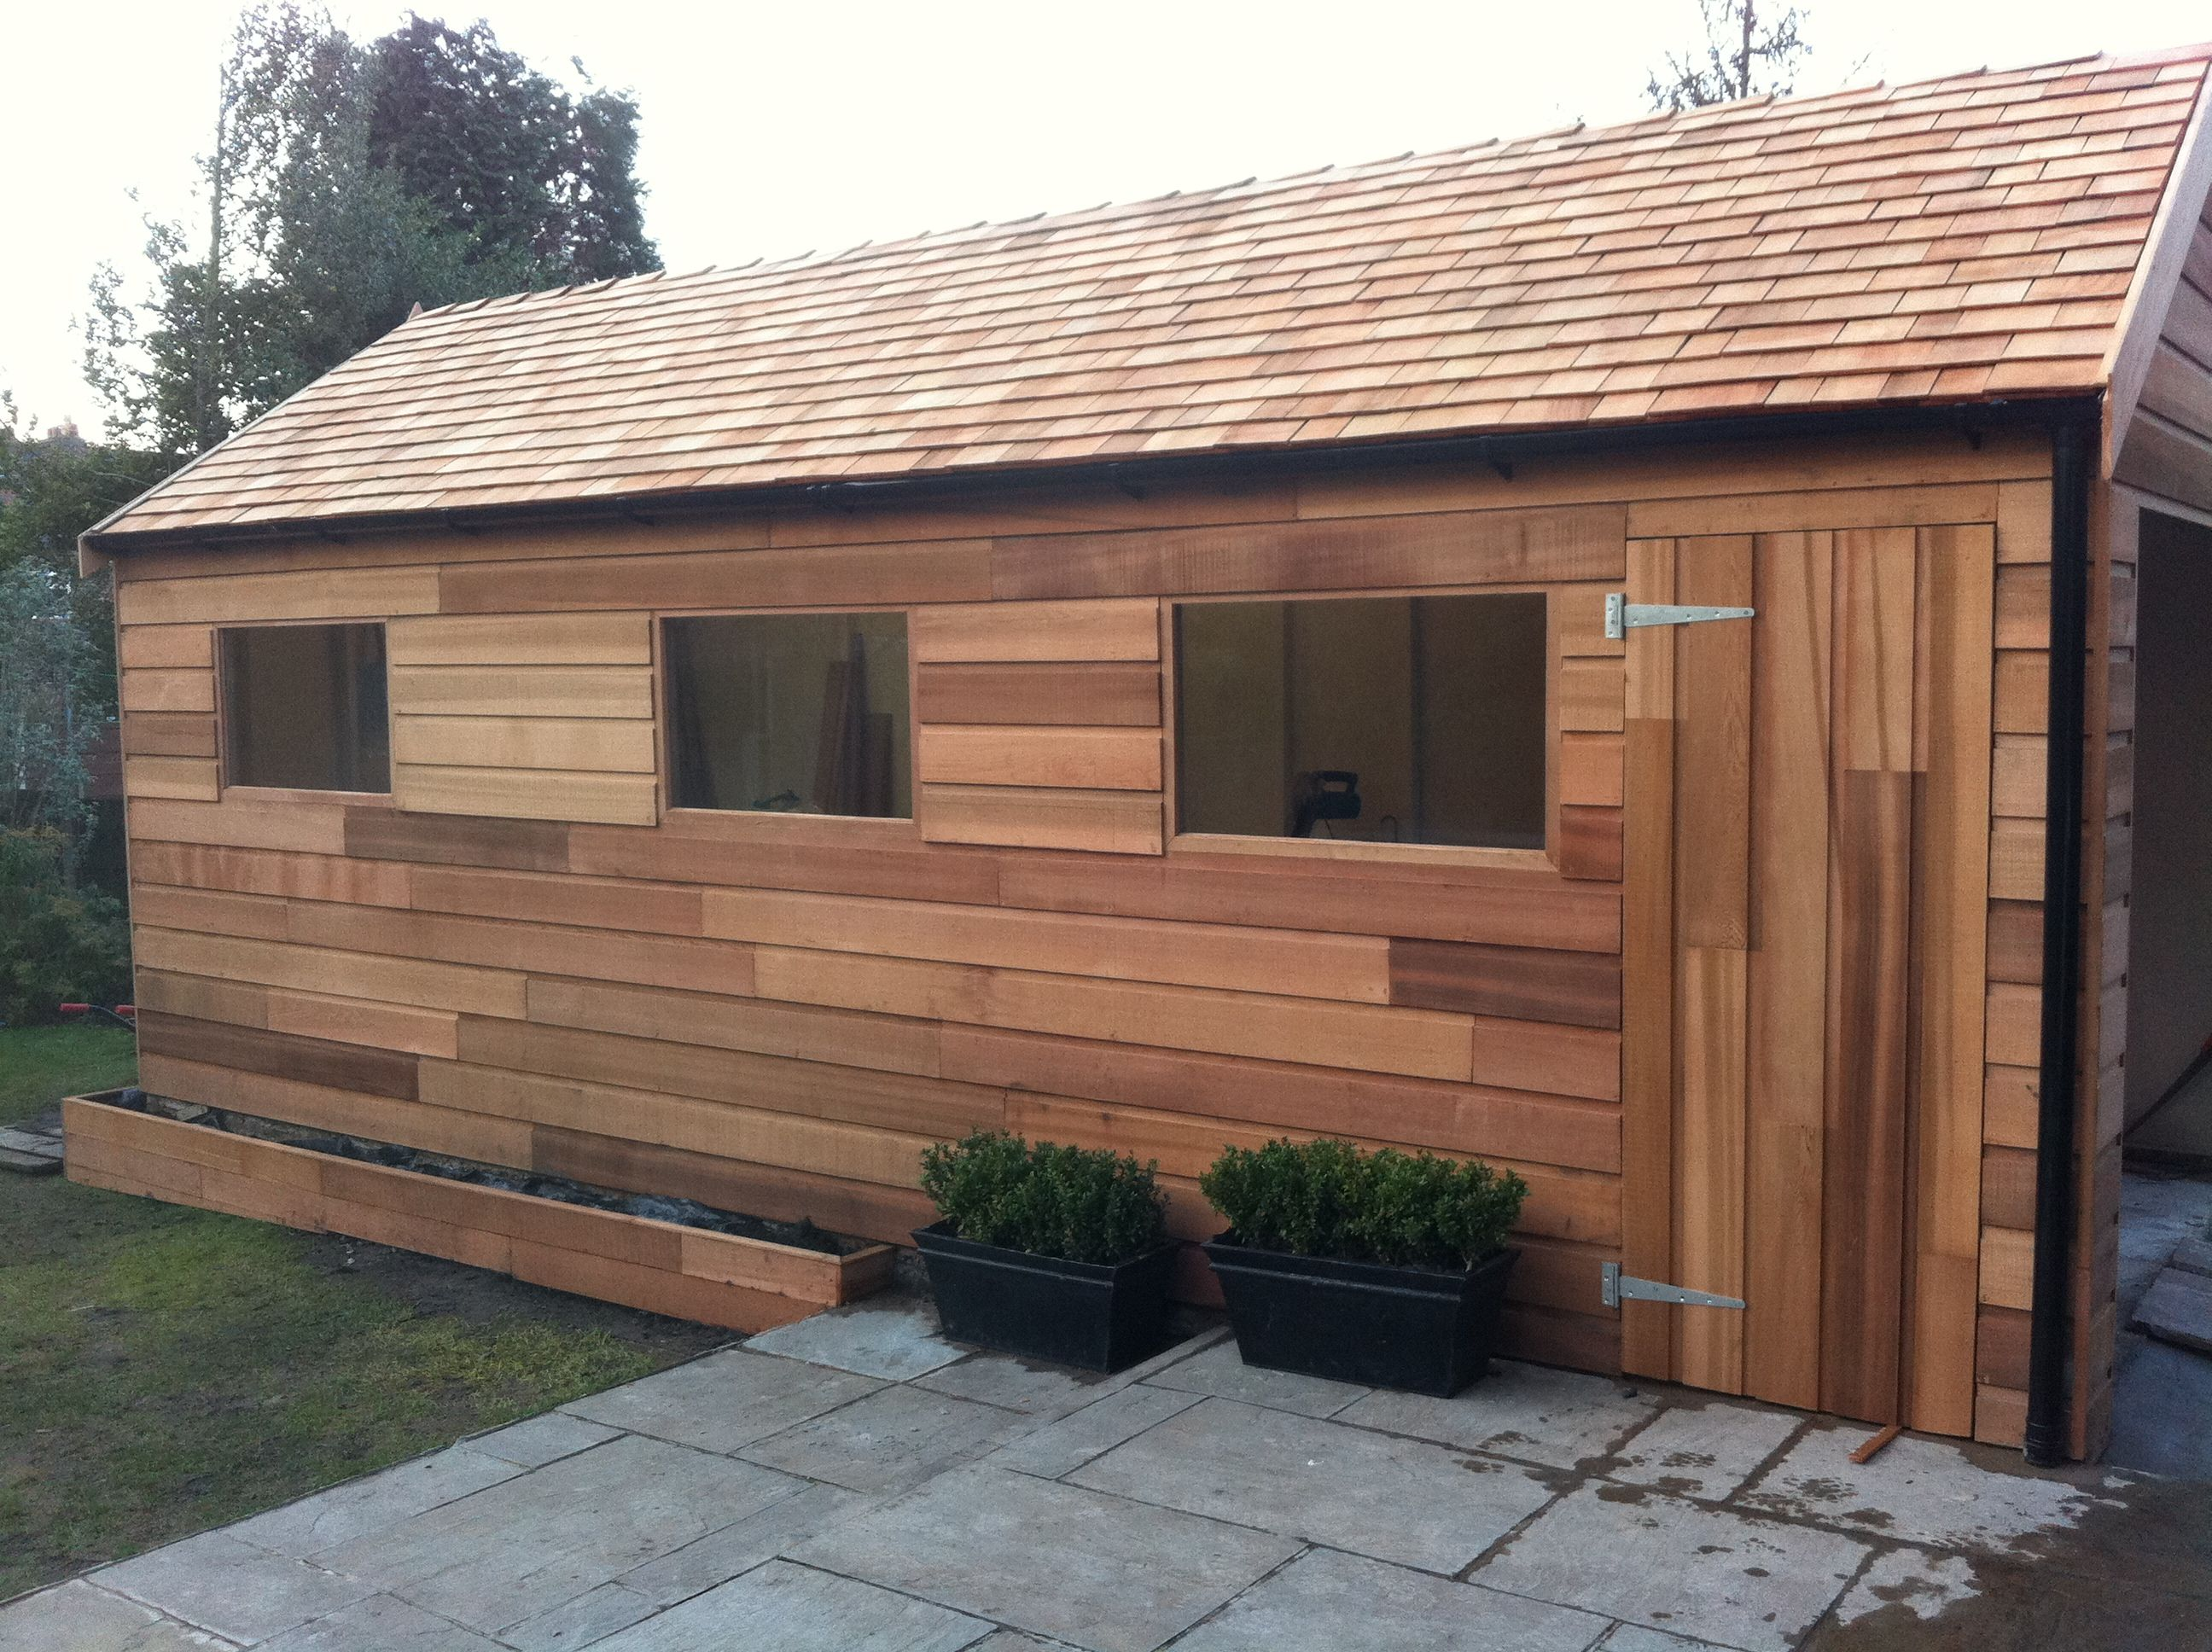 Western Red Cedar Cladding And Roofing Shingles By Darren Tidswell.  Contemporary Looking Cladding On A